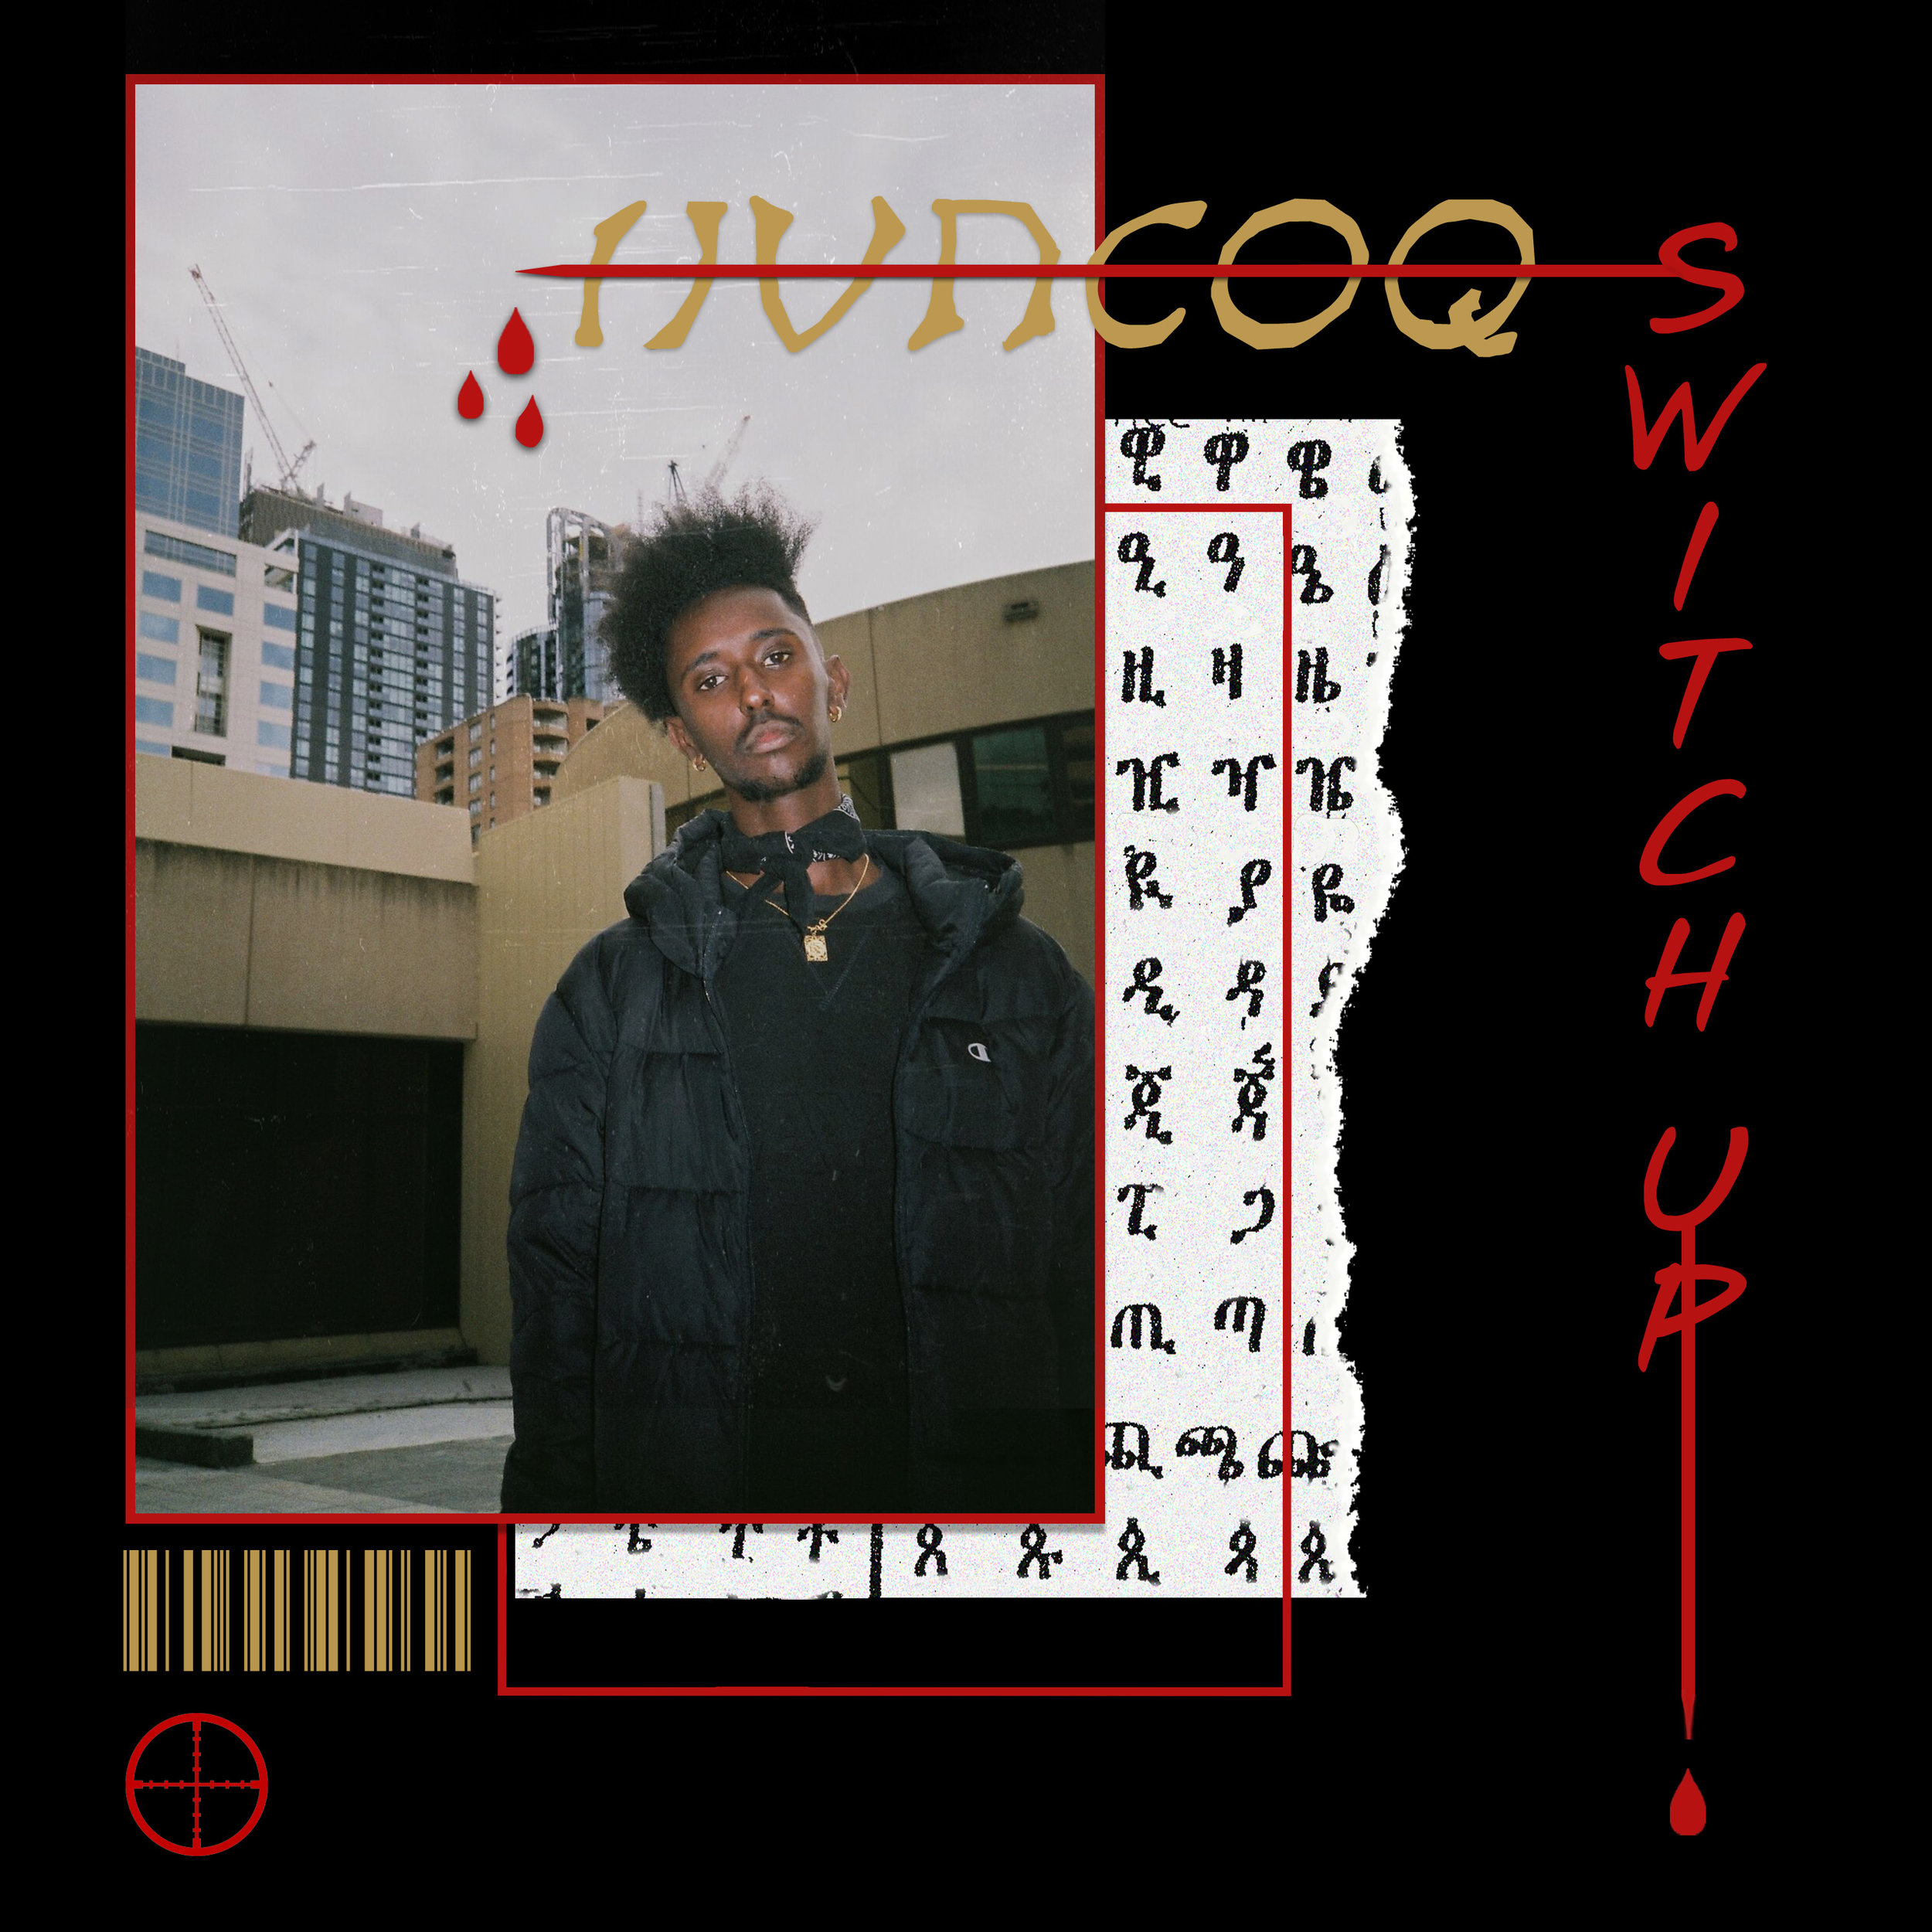 WVS041 - HVNCOQ - Switch Up - Artwork.jpg